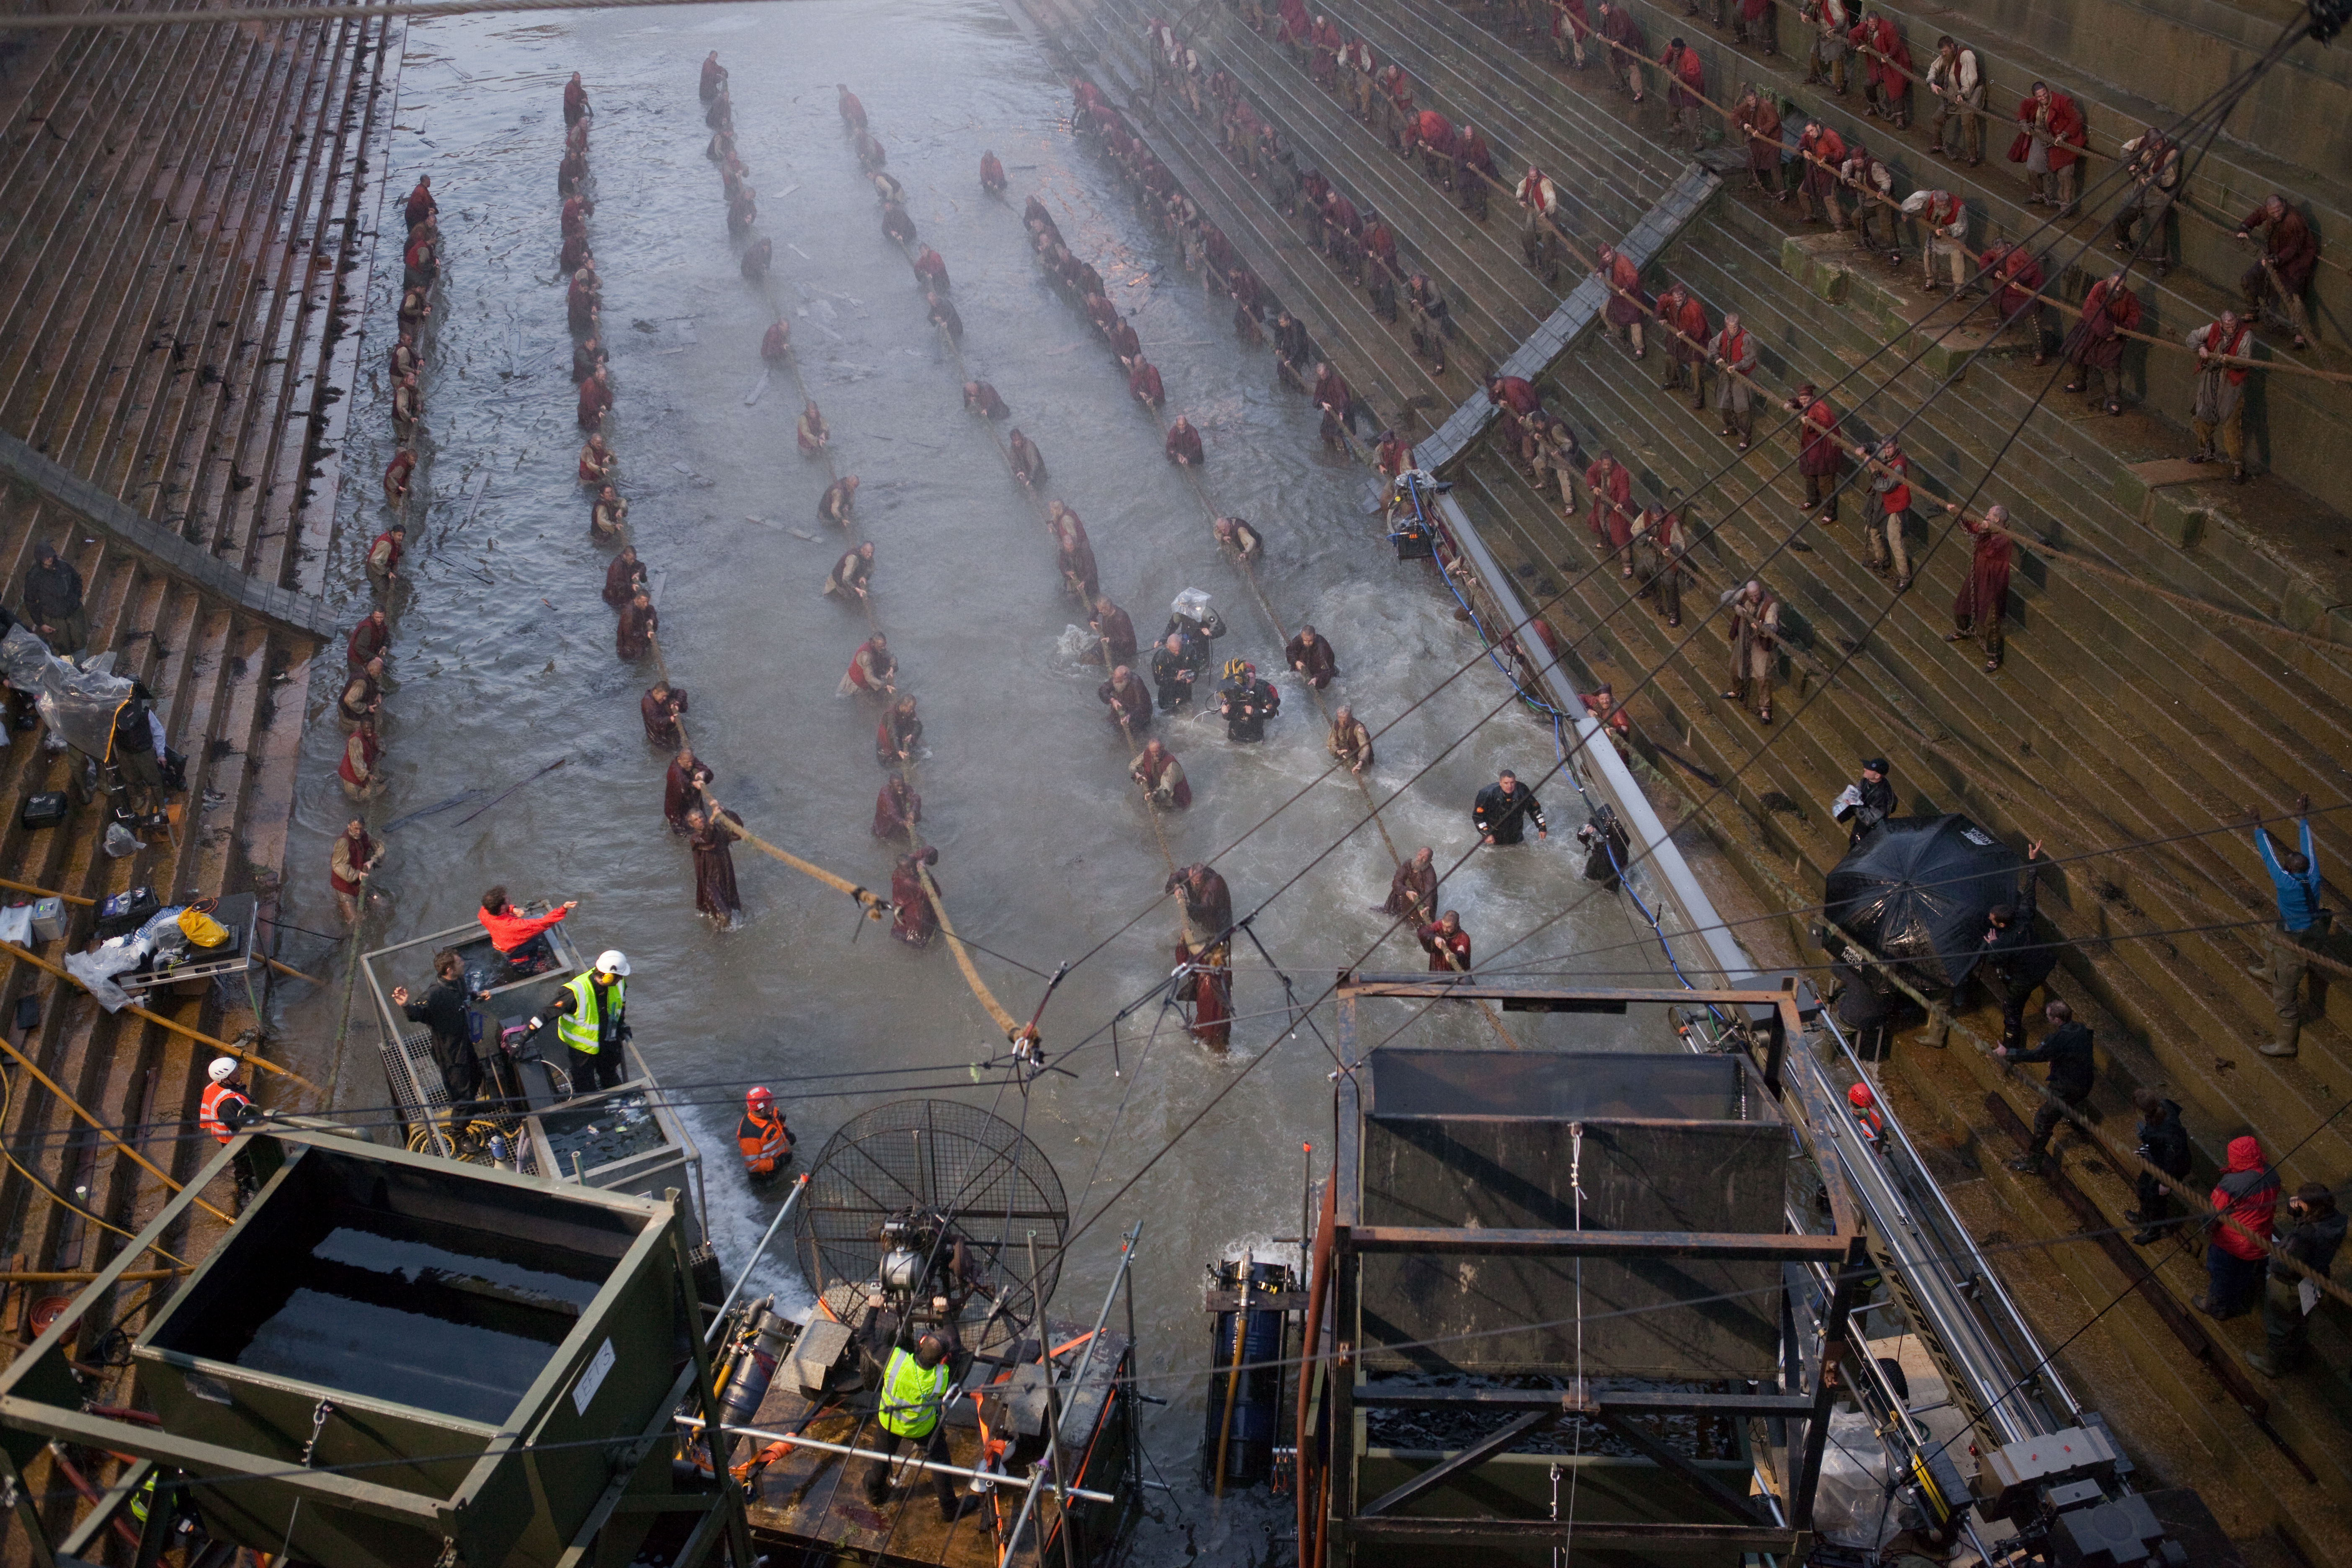 Cold water and an epic scale made shooting the shipyard scene difficult.